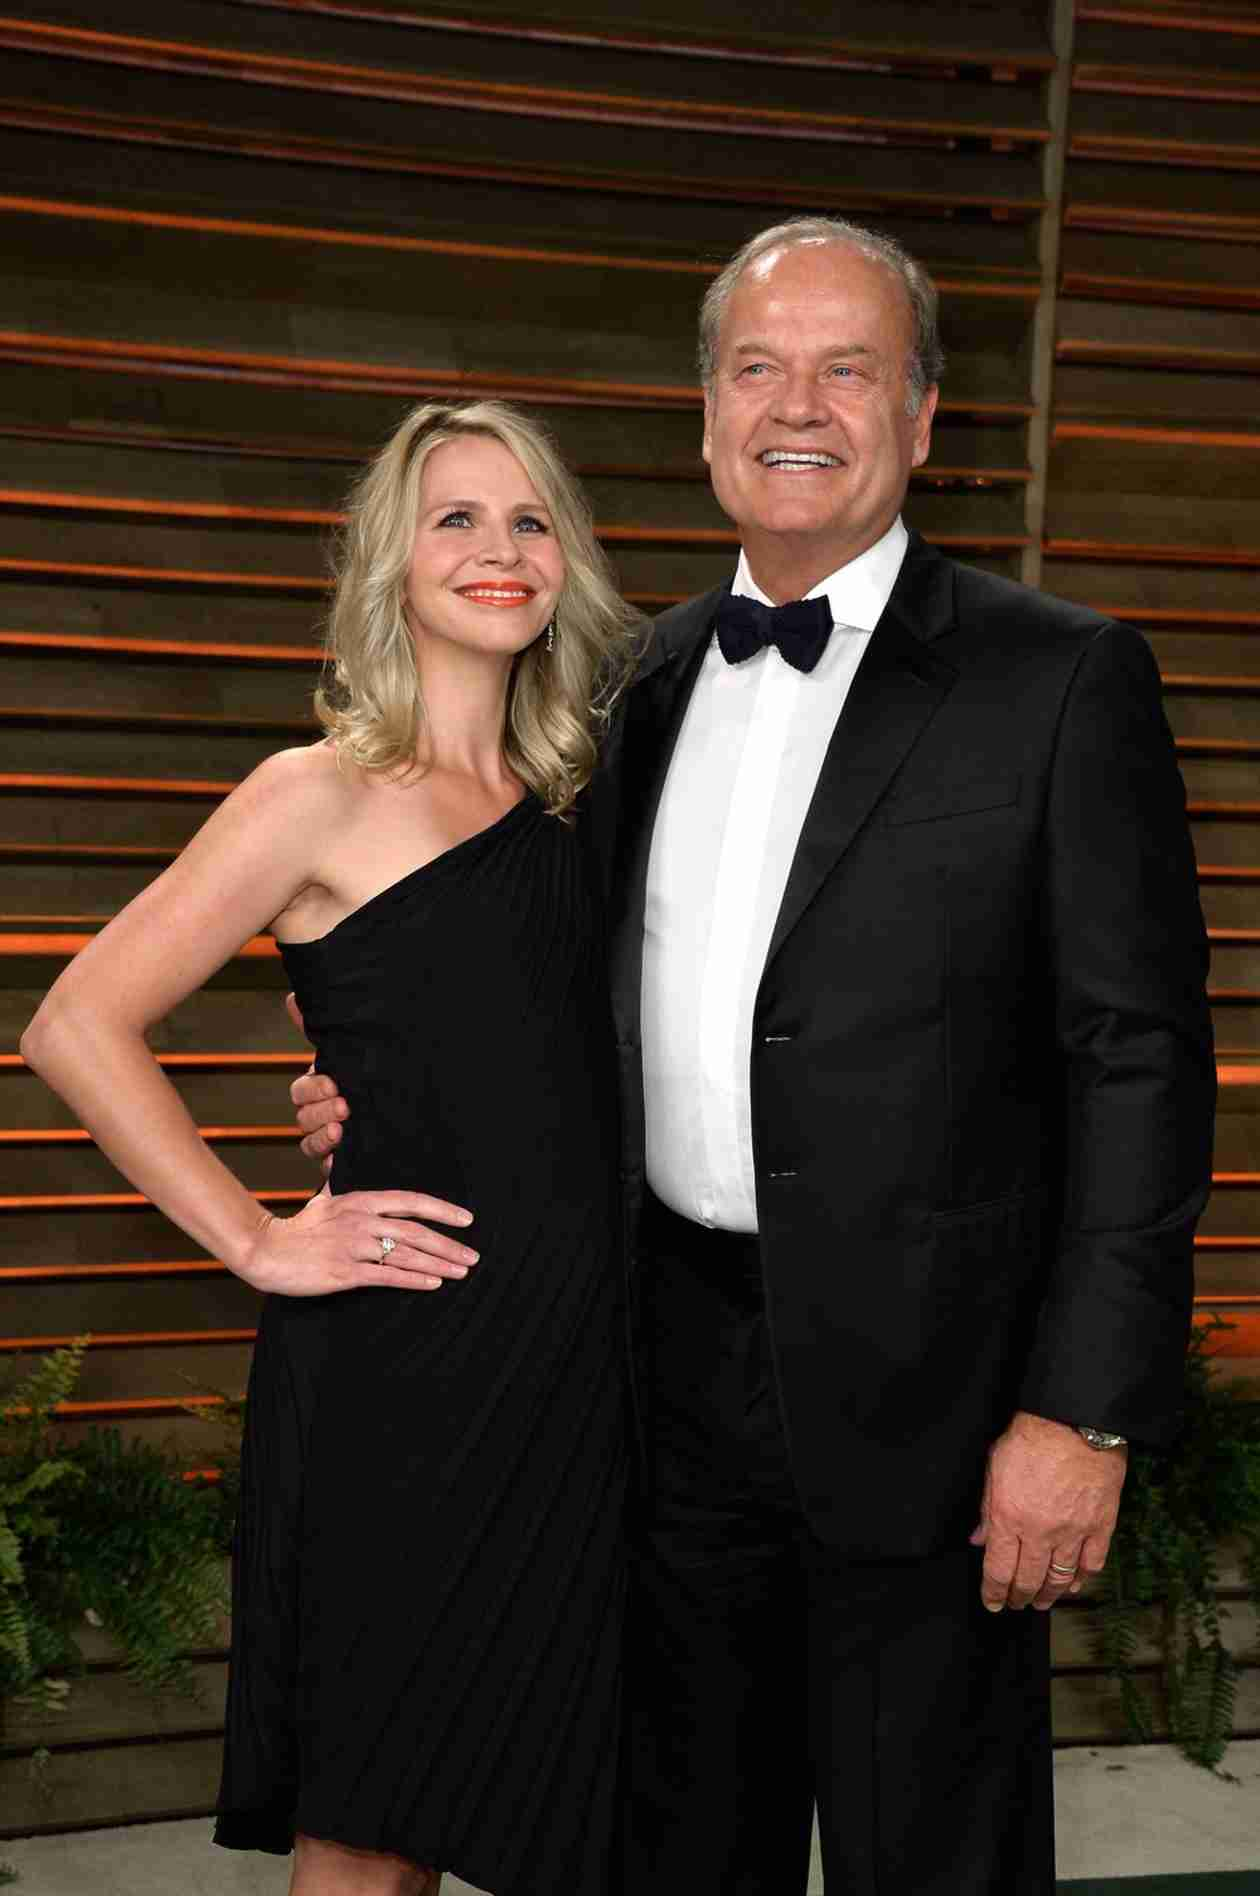 Kelsey Grammer and Wife Kayte Welcome Second Child Together (VIDEO)